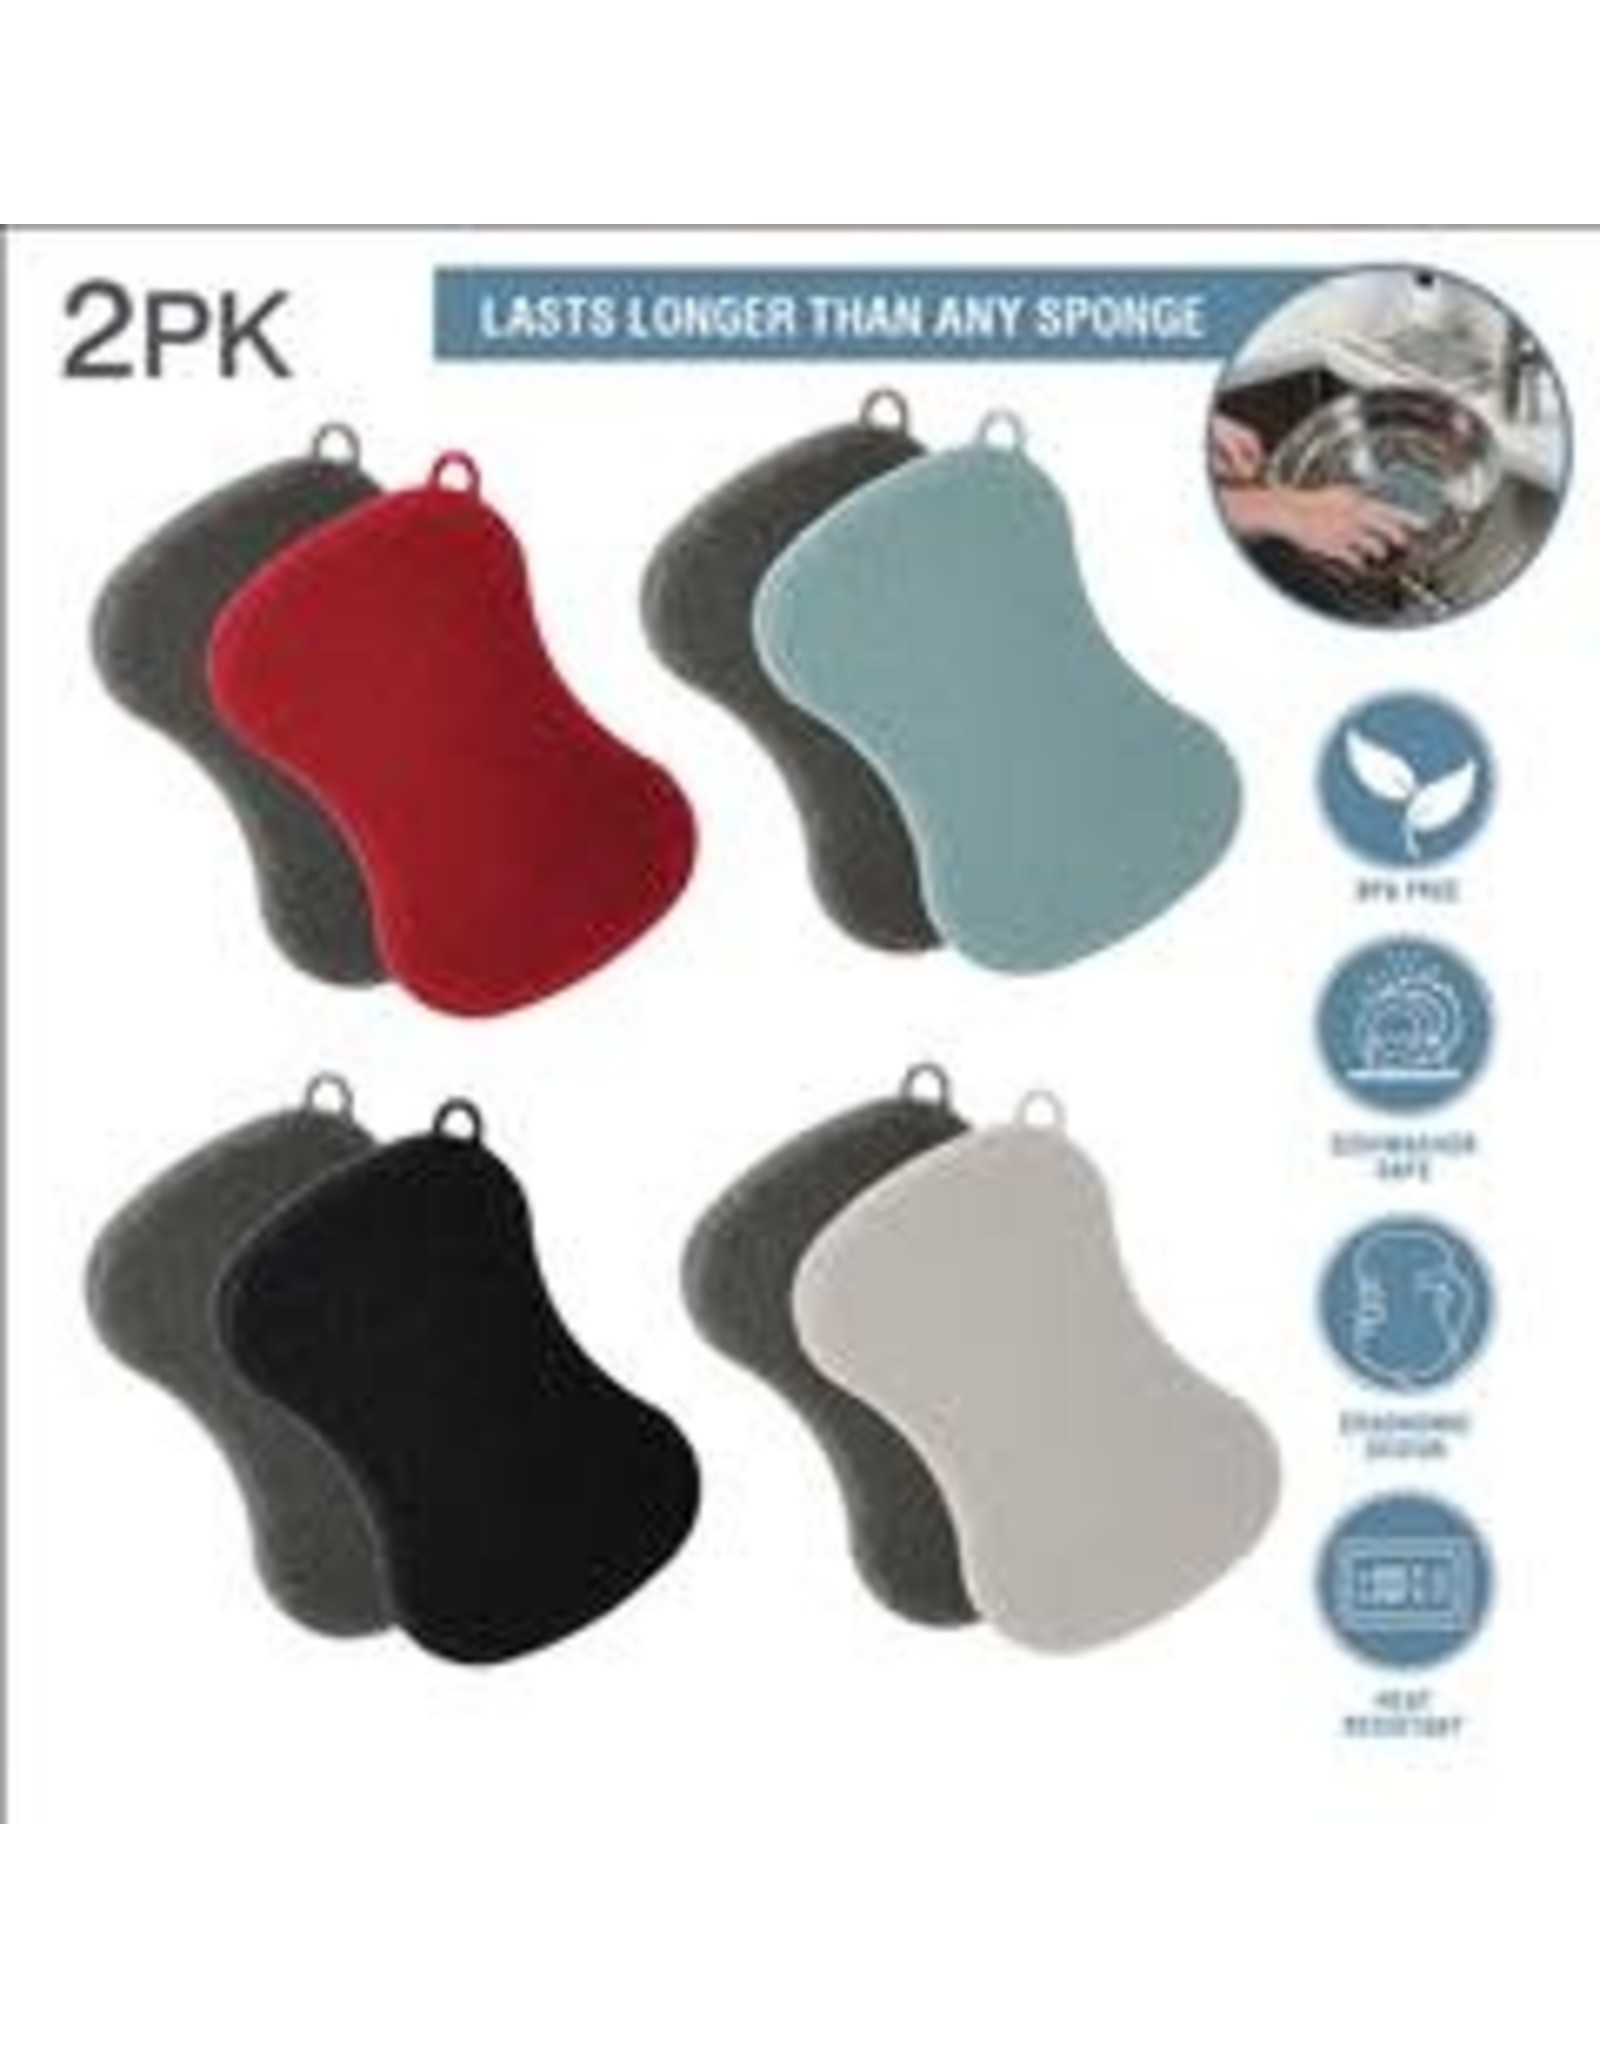 2pk- Oval Silicone Dishwashing Scrubber - Asst.